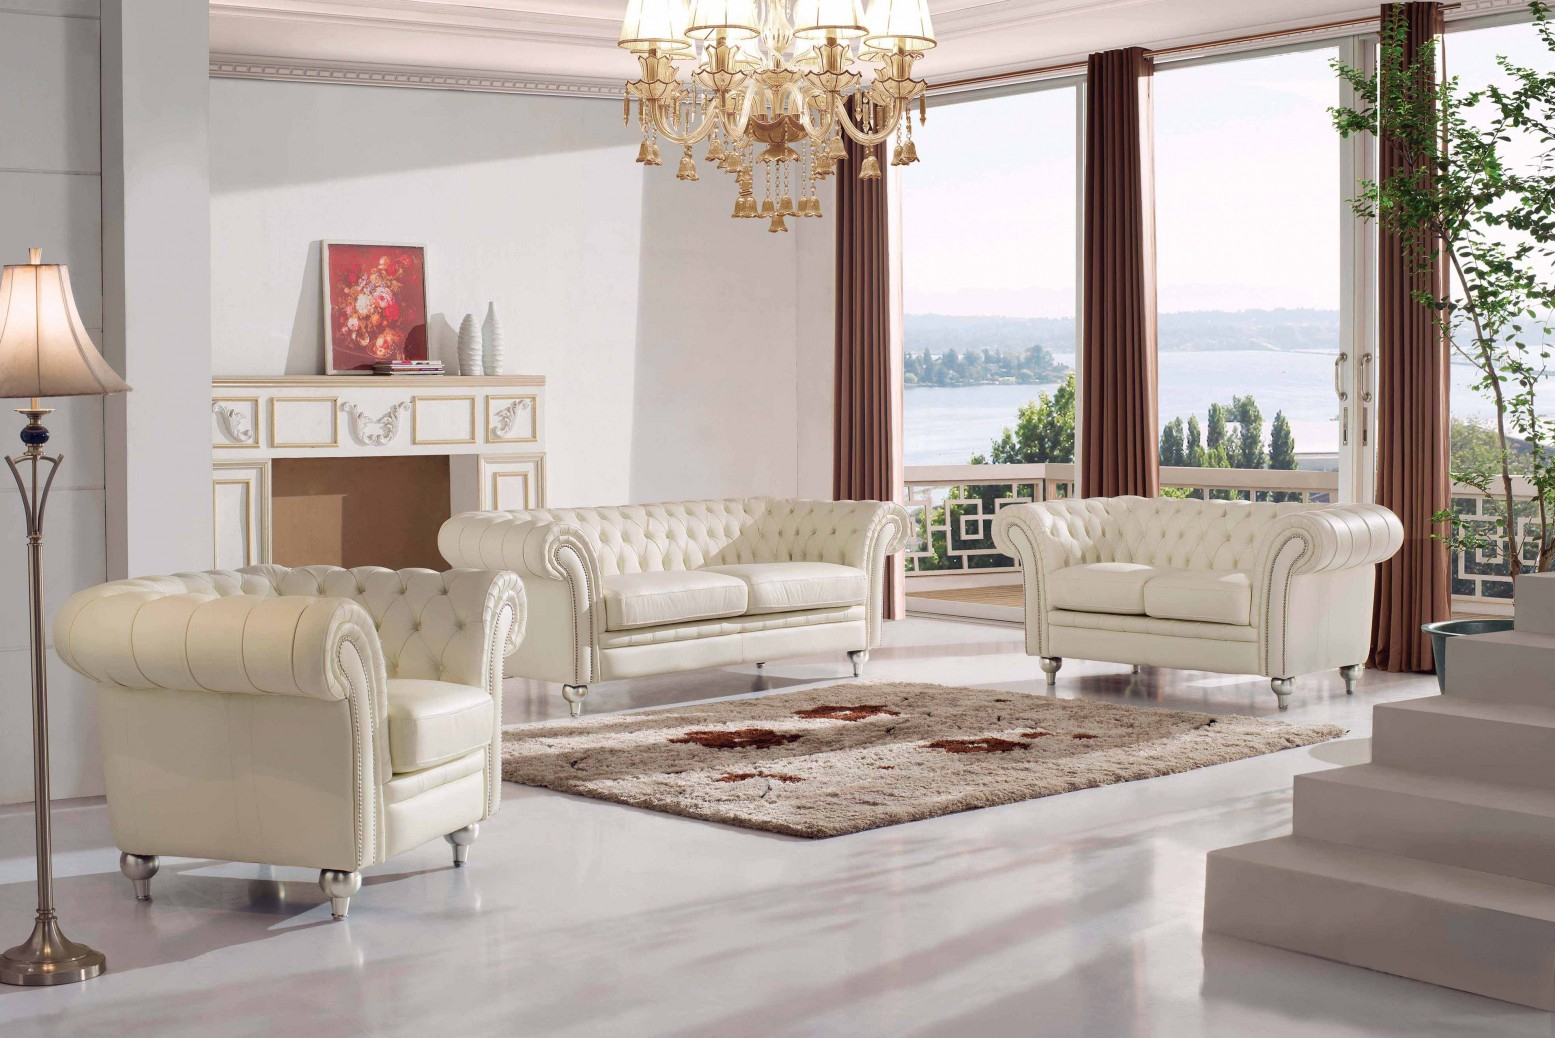 287 Living Room Set Esf Furniture Sohomod throughout 11 Clever Ways How to Build Living Room Set For Sale